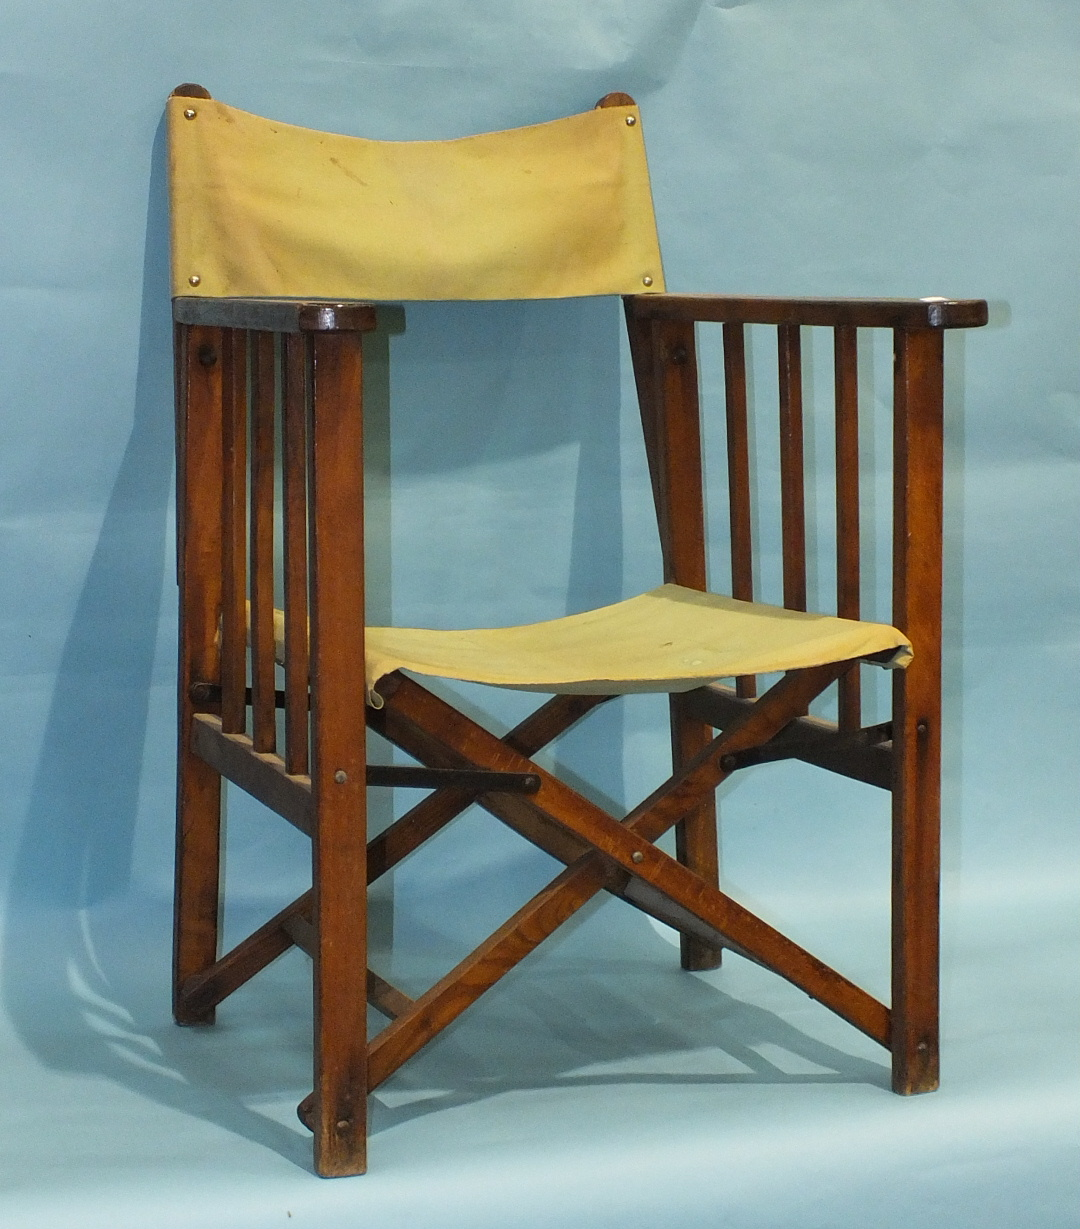 A vintage stained wood folding deck chair/pilot's chair with canvas back and seat. (Belonged to a - Image 2 of 3